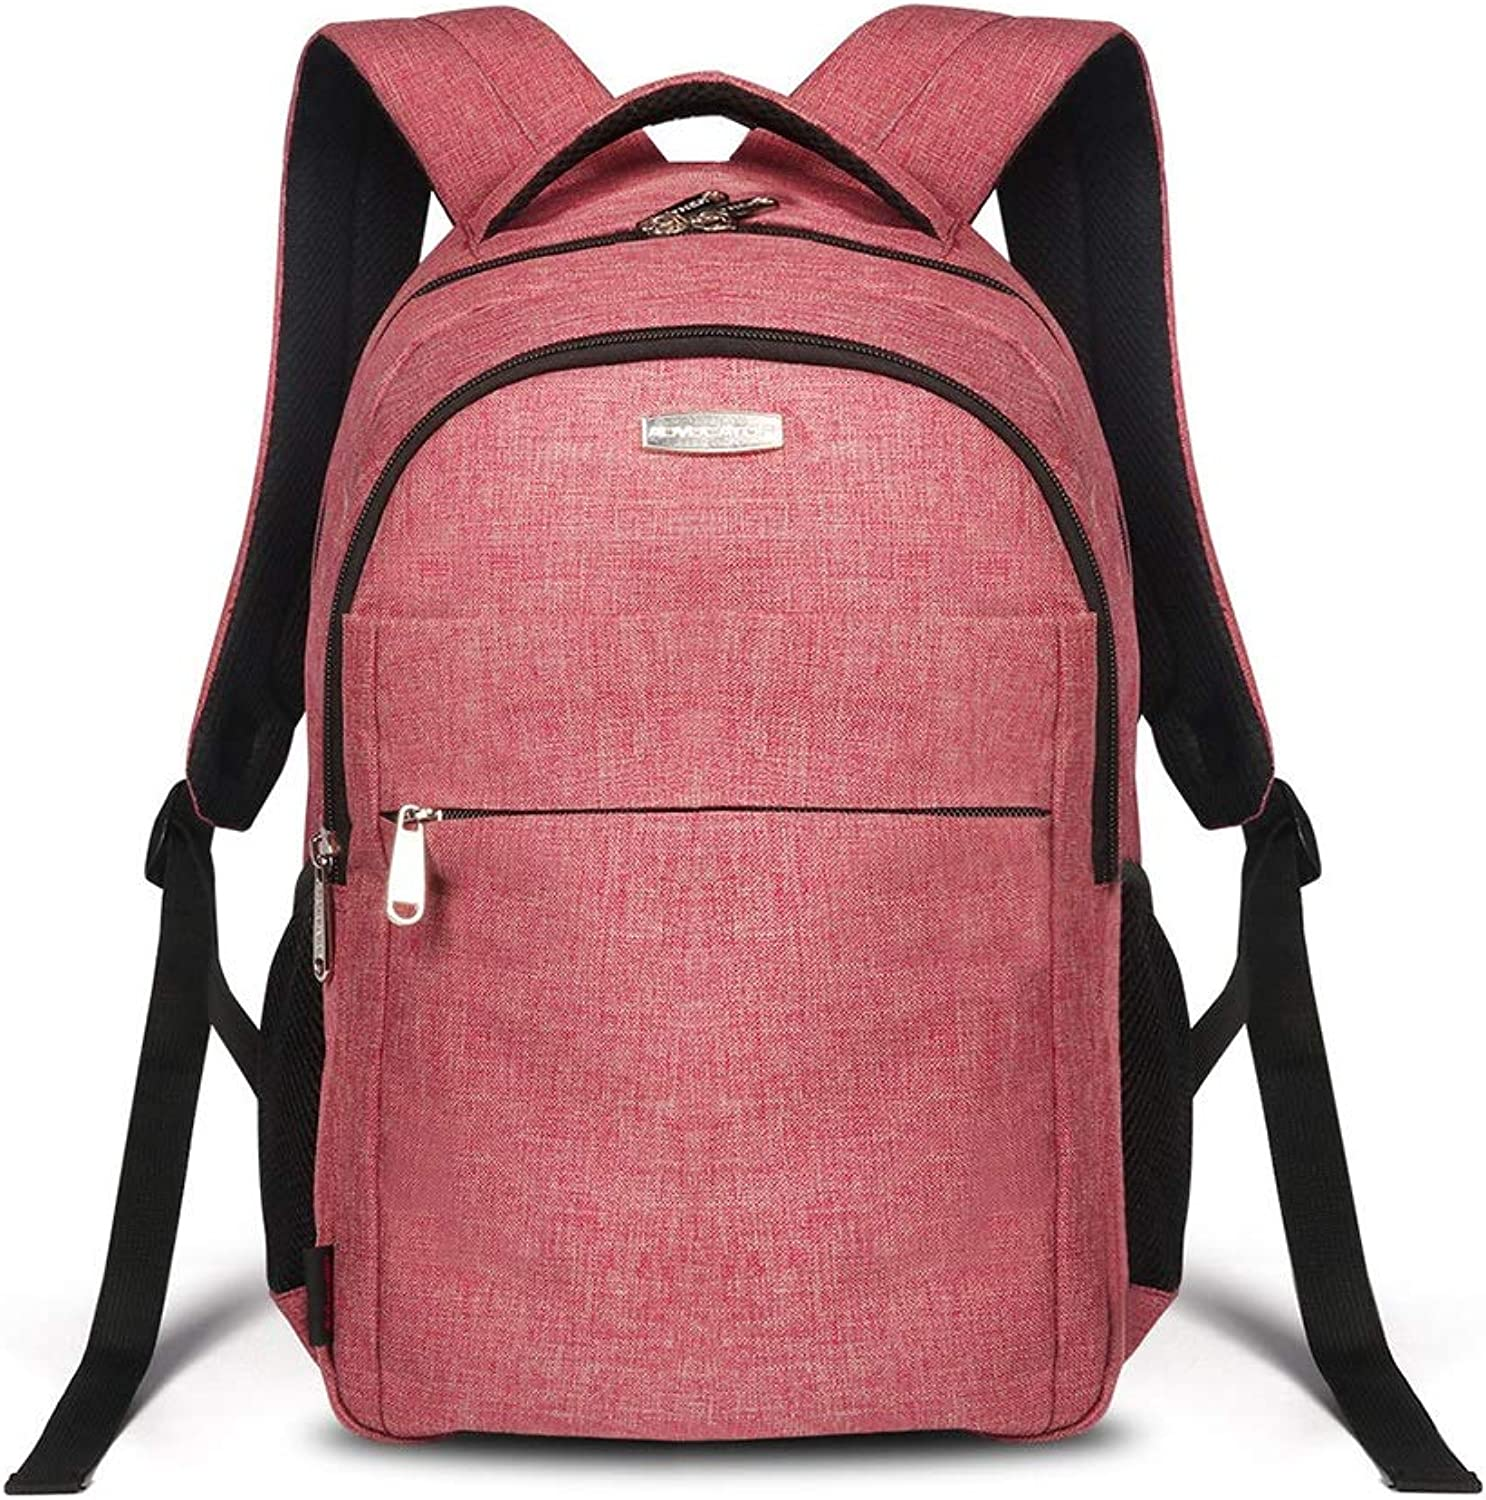 79ec68c3a99 Backpack Men and Women Students Bag Leisure Notebook Daypack Wear ...